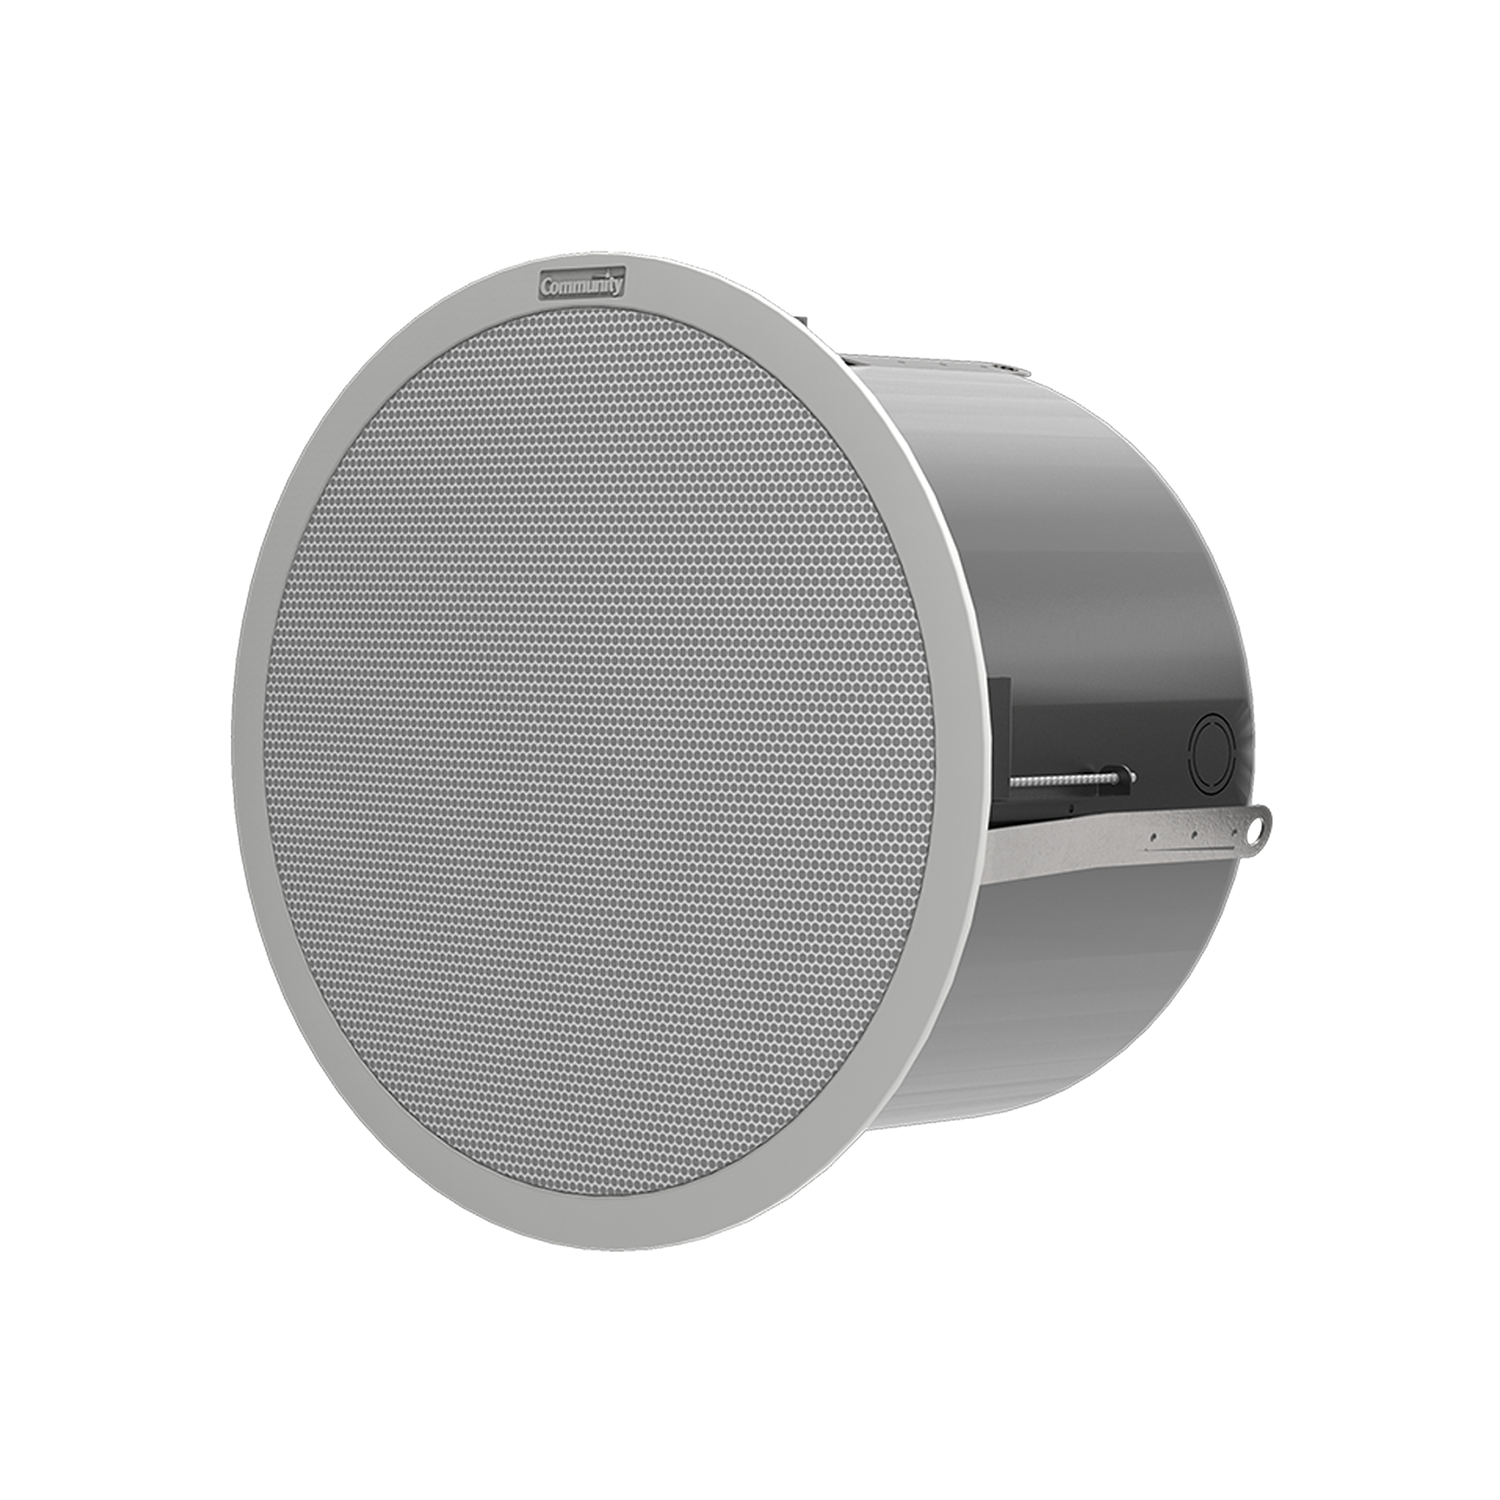 D8 Ceiling Loudspeaker - 8-inch High Output High Quality Two-Way